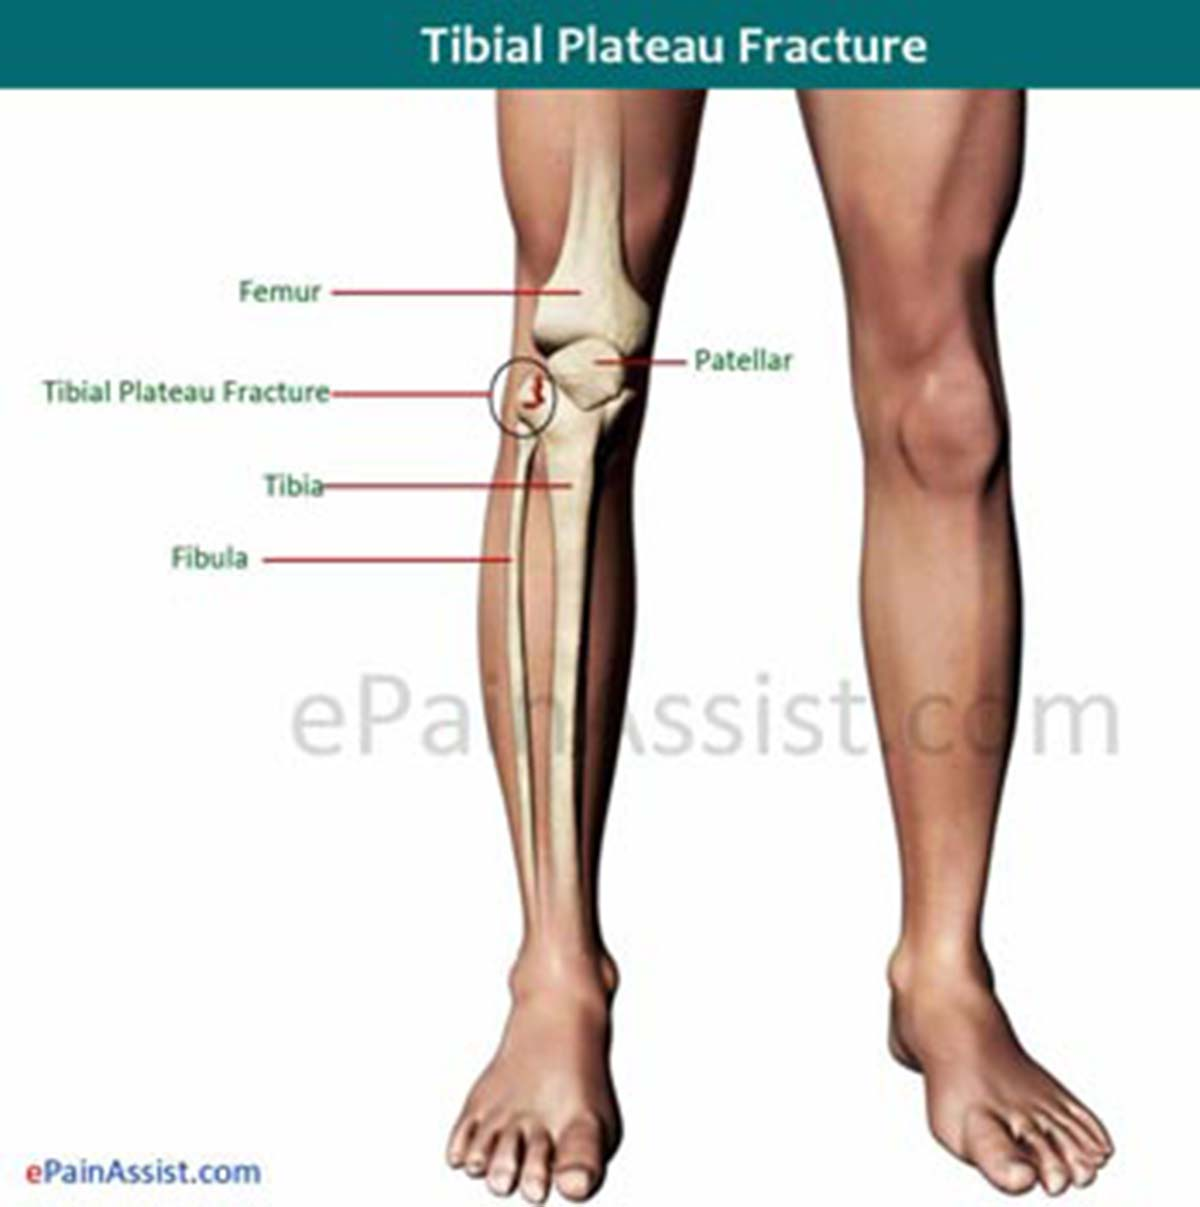 Tibial Plateau Fracture